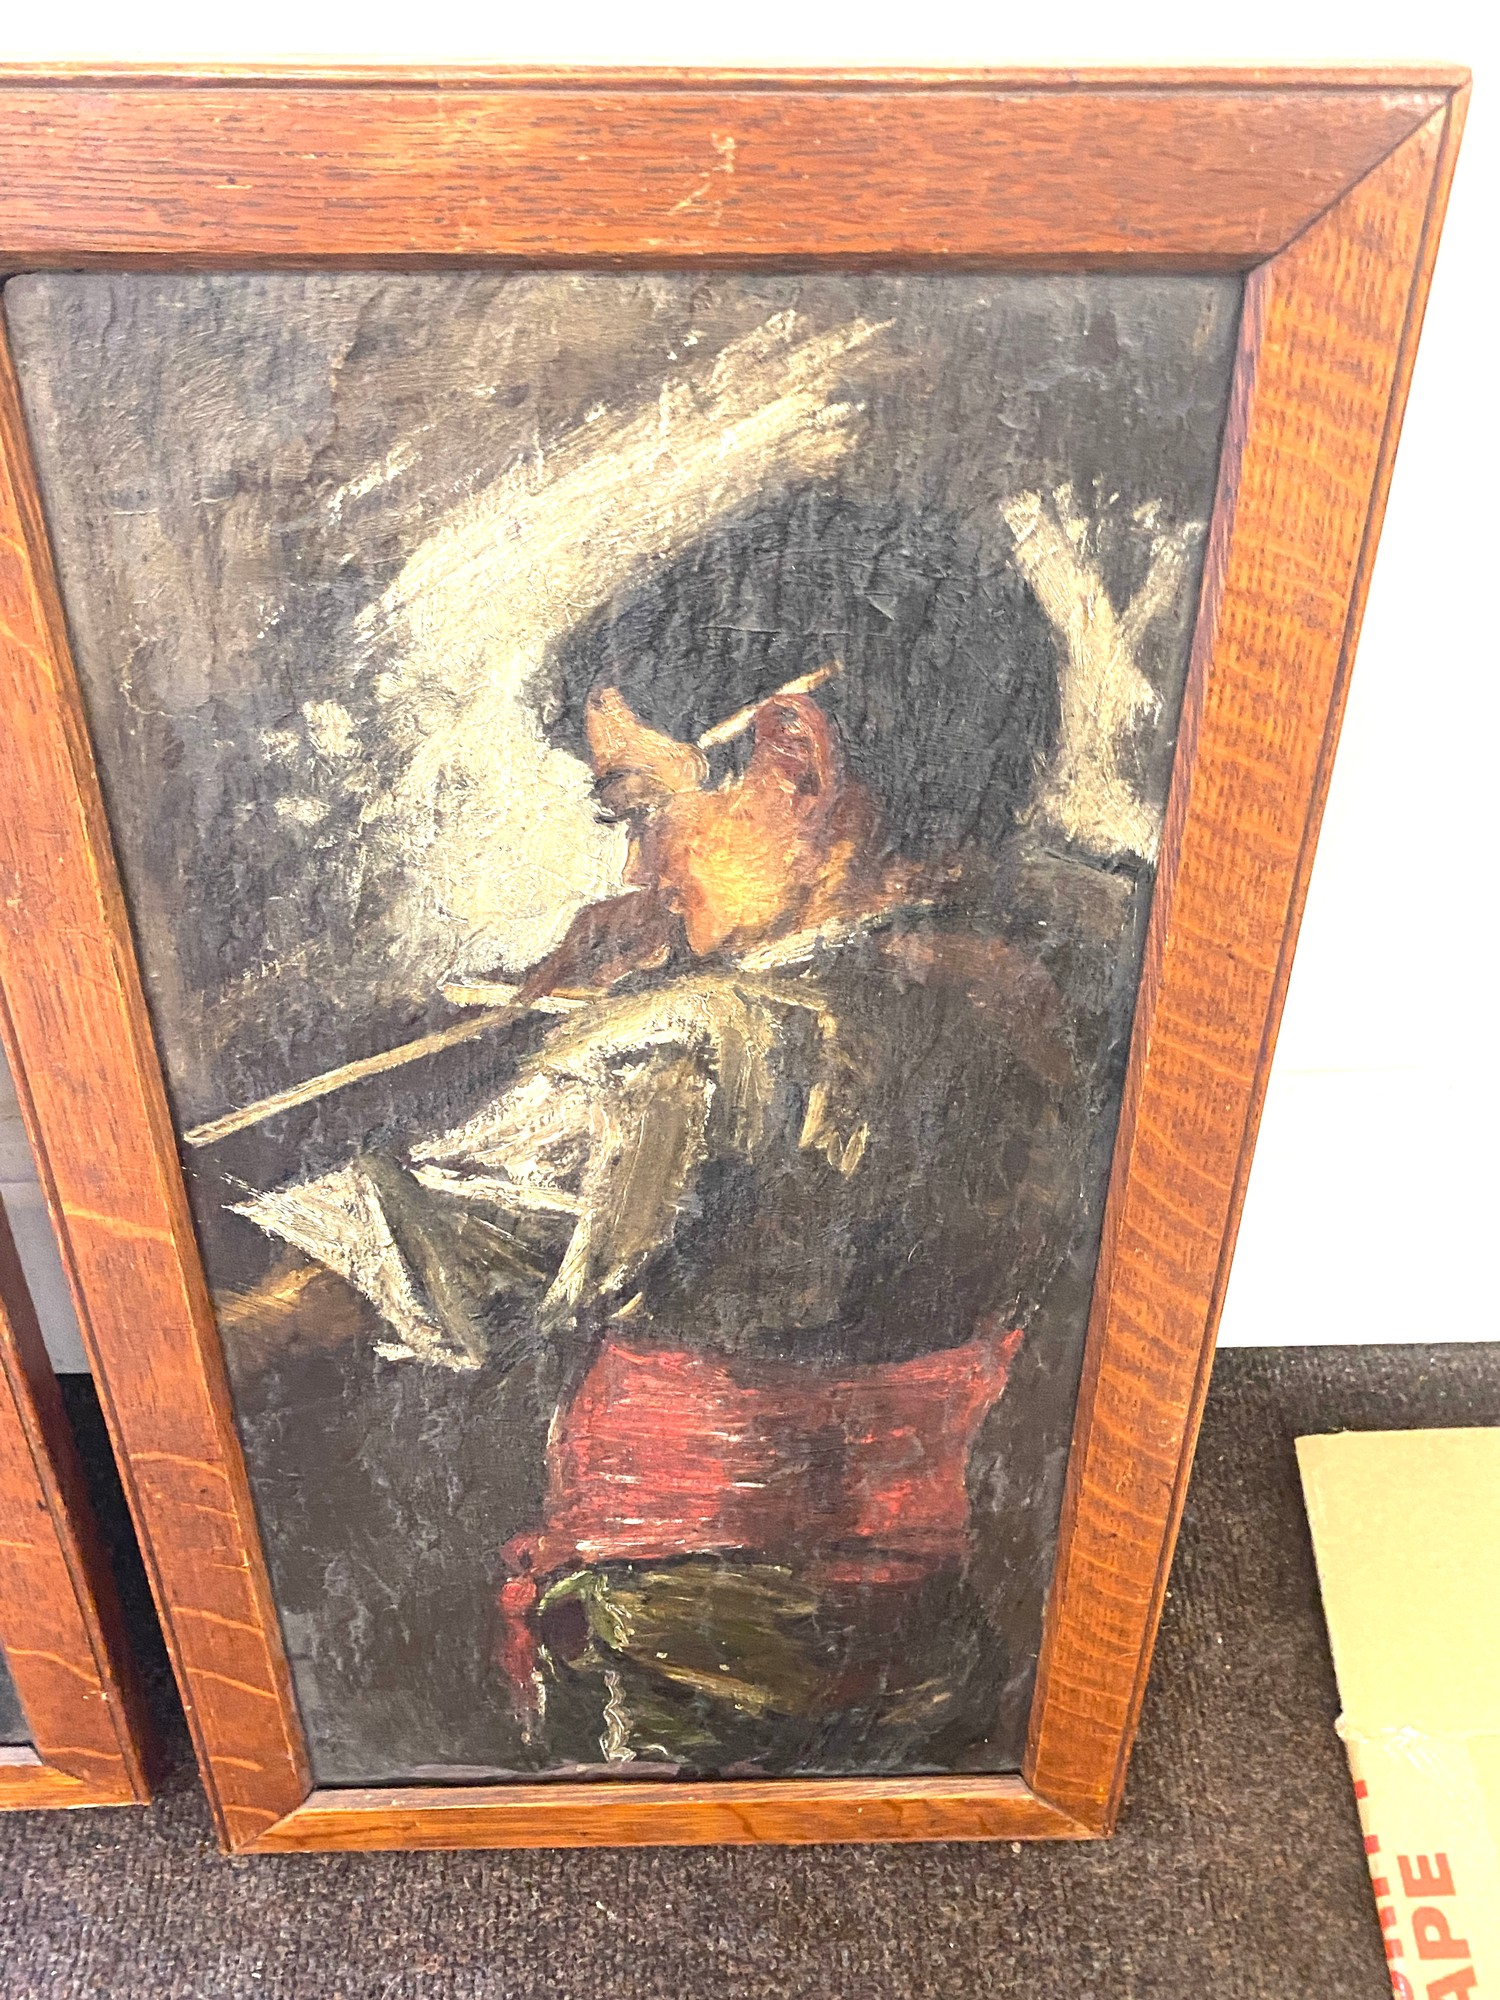 Pair of antique paintings on slate, signed on the frame. - Image 2 of 3